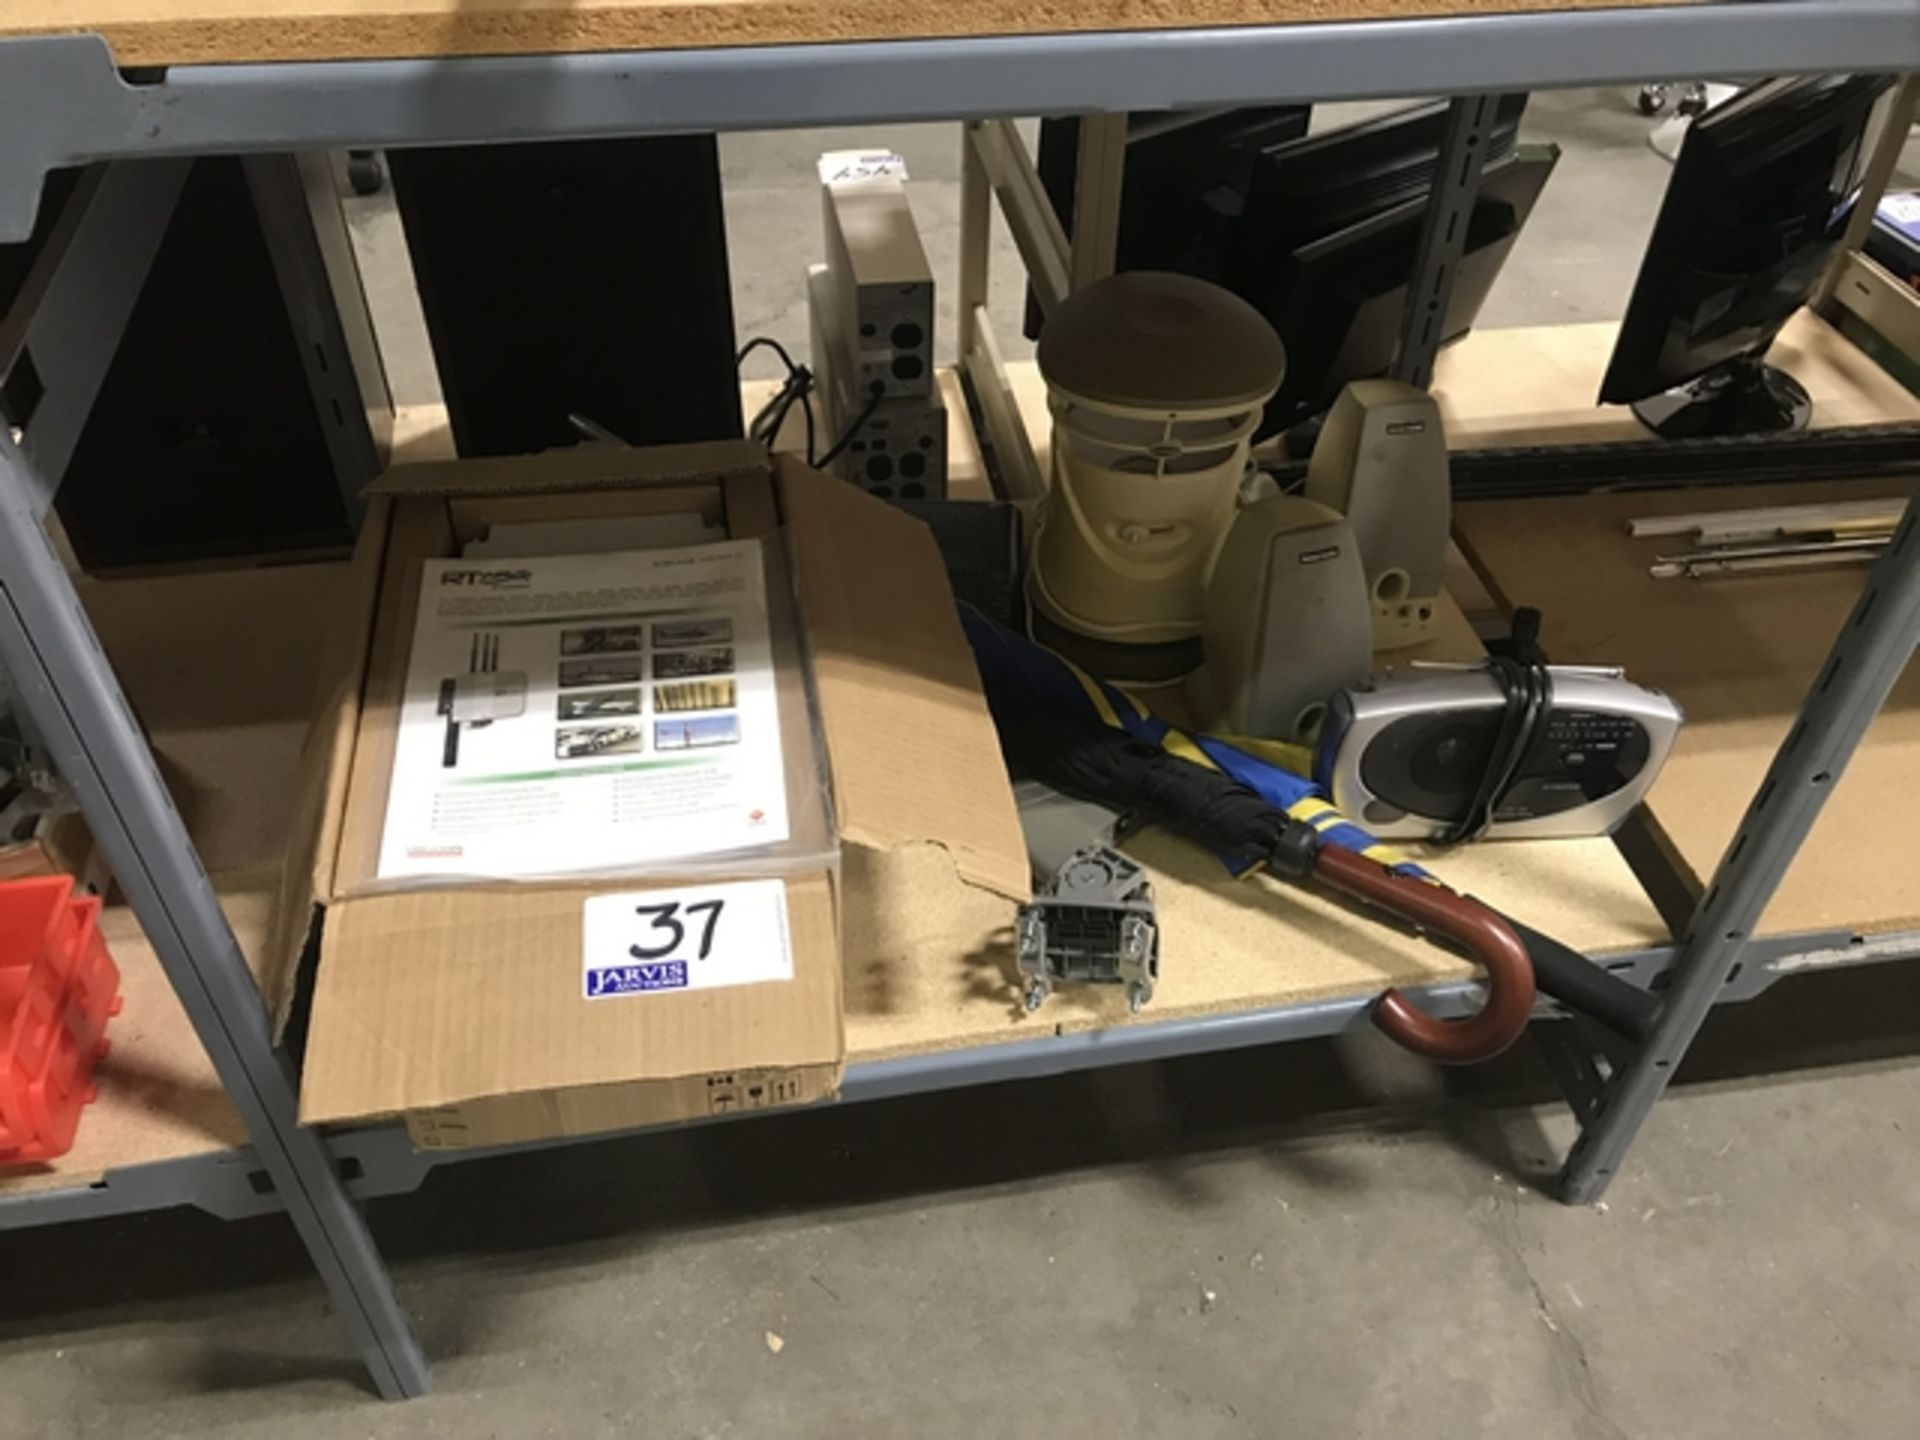 Lot 37 - WIRELESS VIDEO SYSTEM AND ASSORTED SUPPLIES